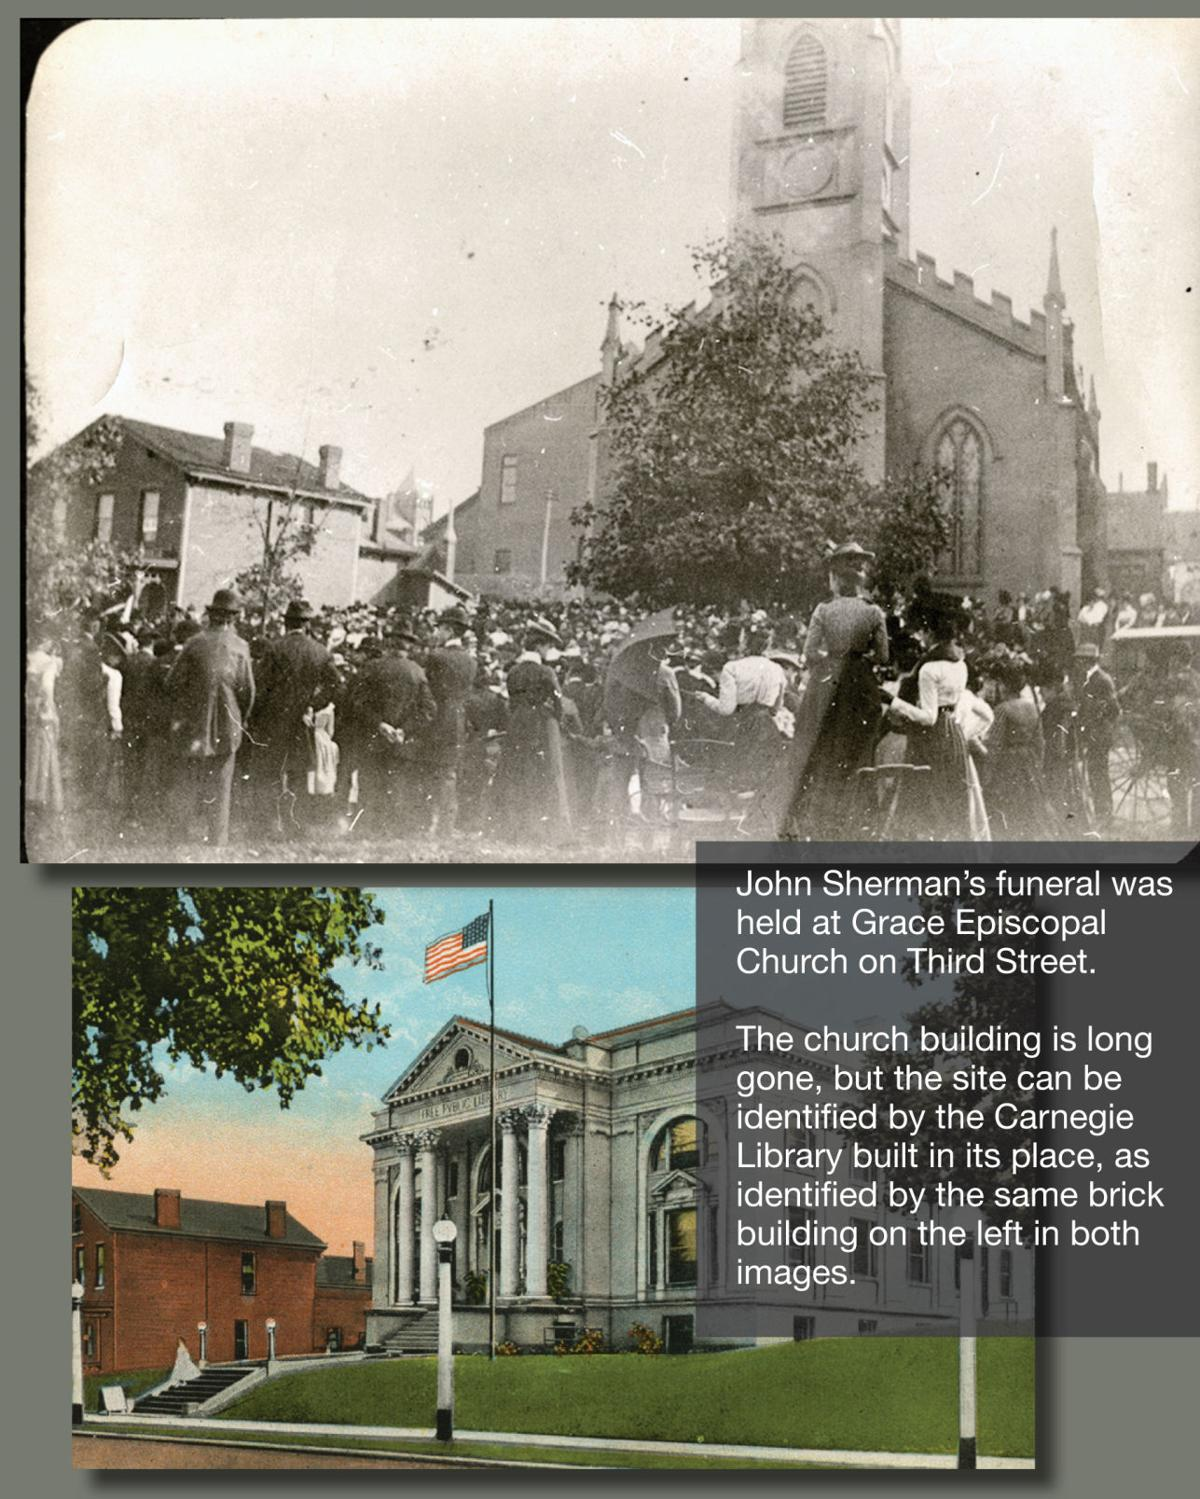 19th century home funeral before the turn of the century - The Sherman Funeral 1900 A Favorite Son Comes Home Area History Richlandsource Com